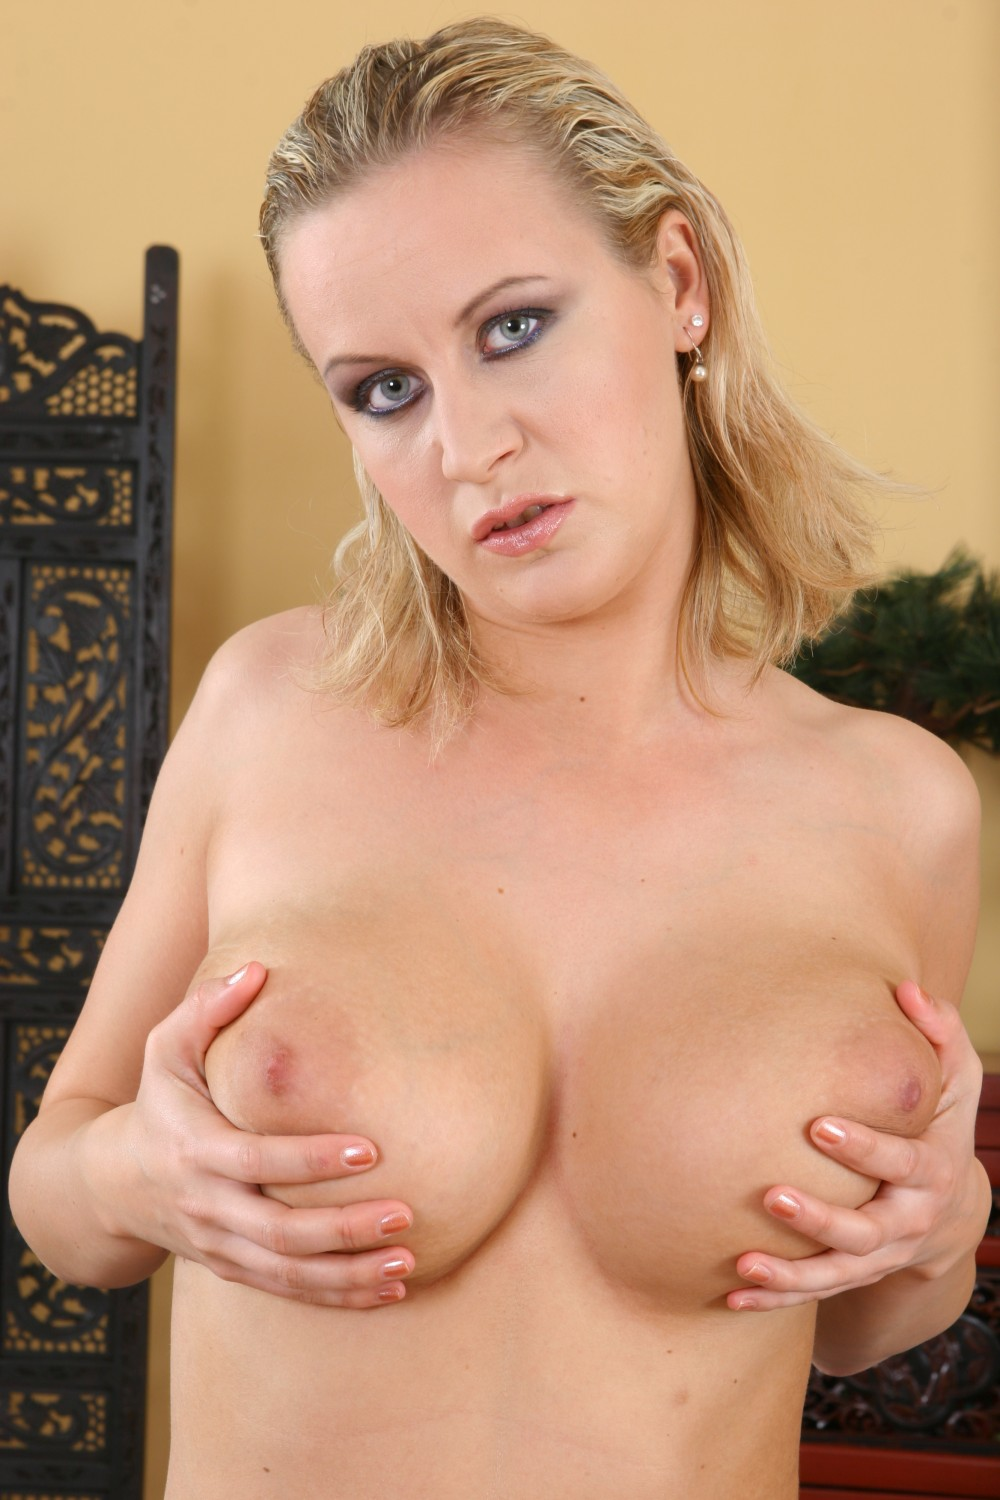 Best big tits hd